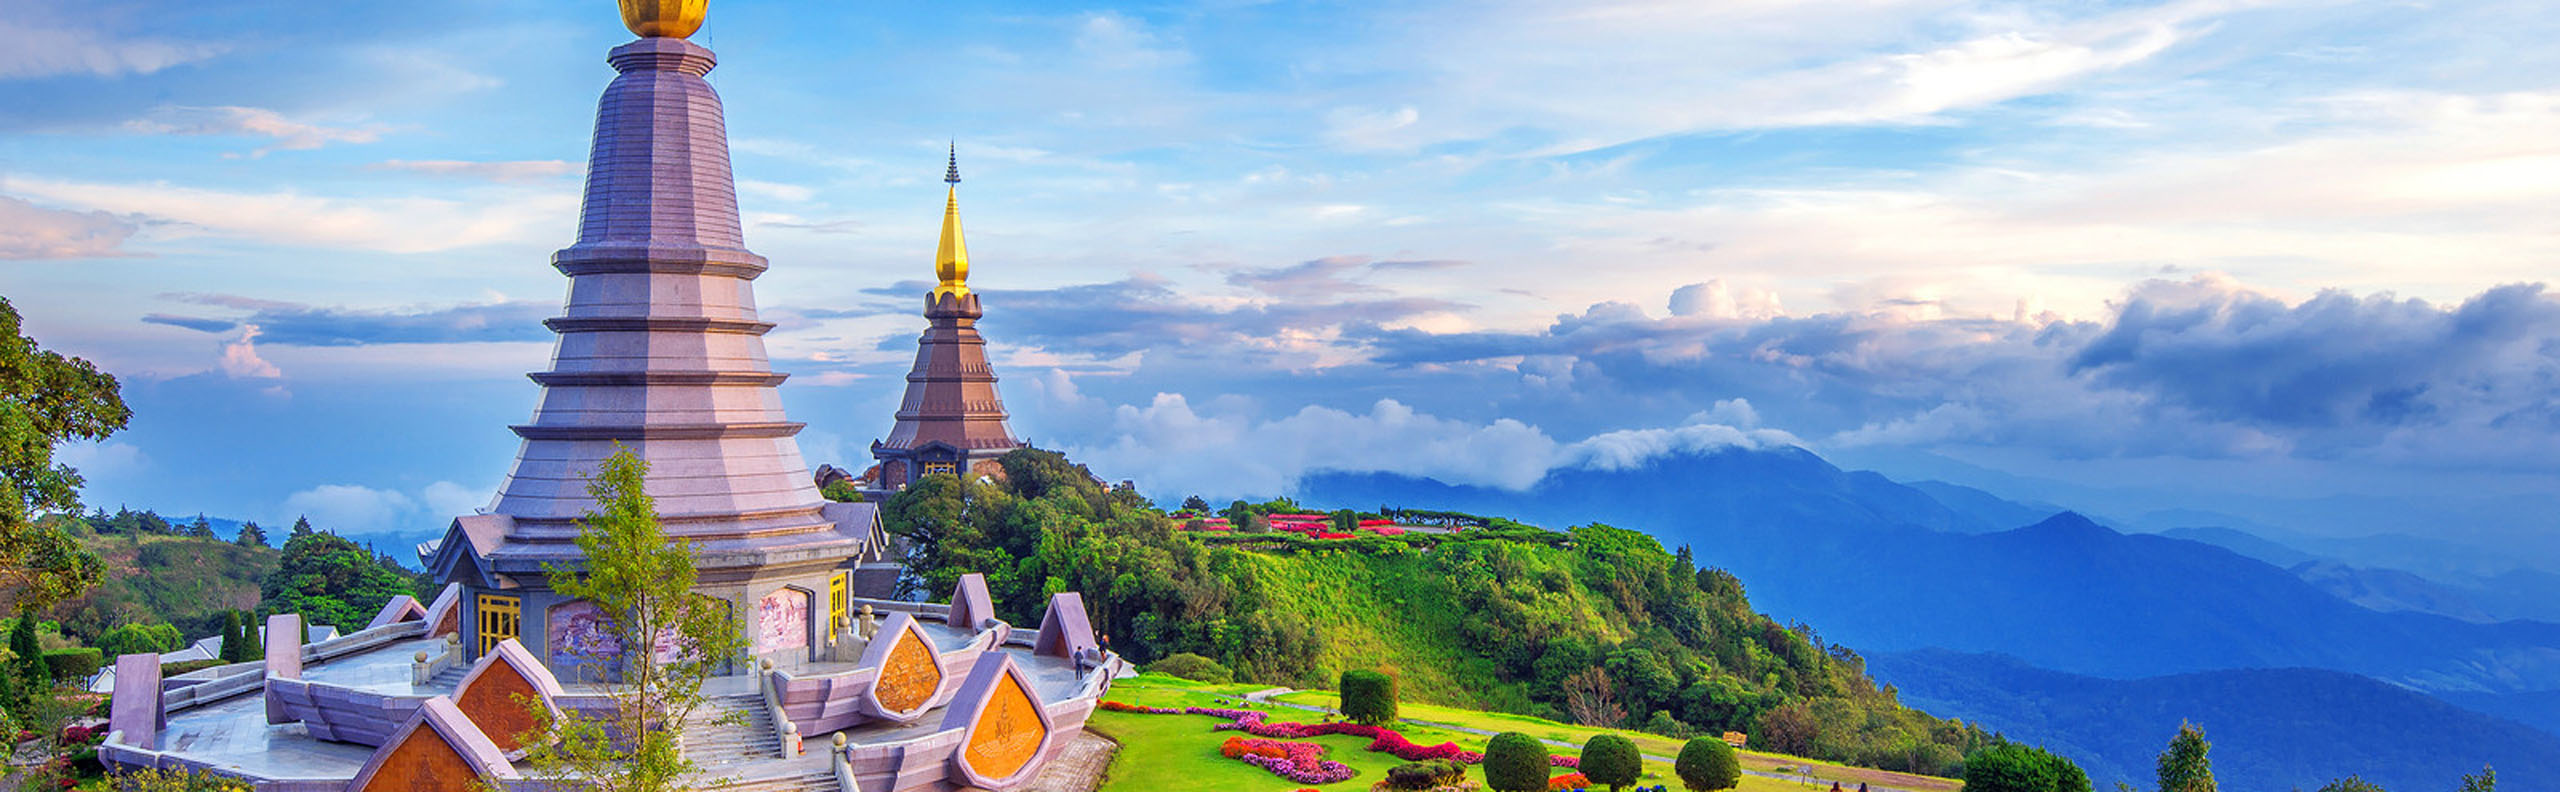 2-Week Thailand Getaway Tour for Couples